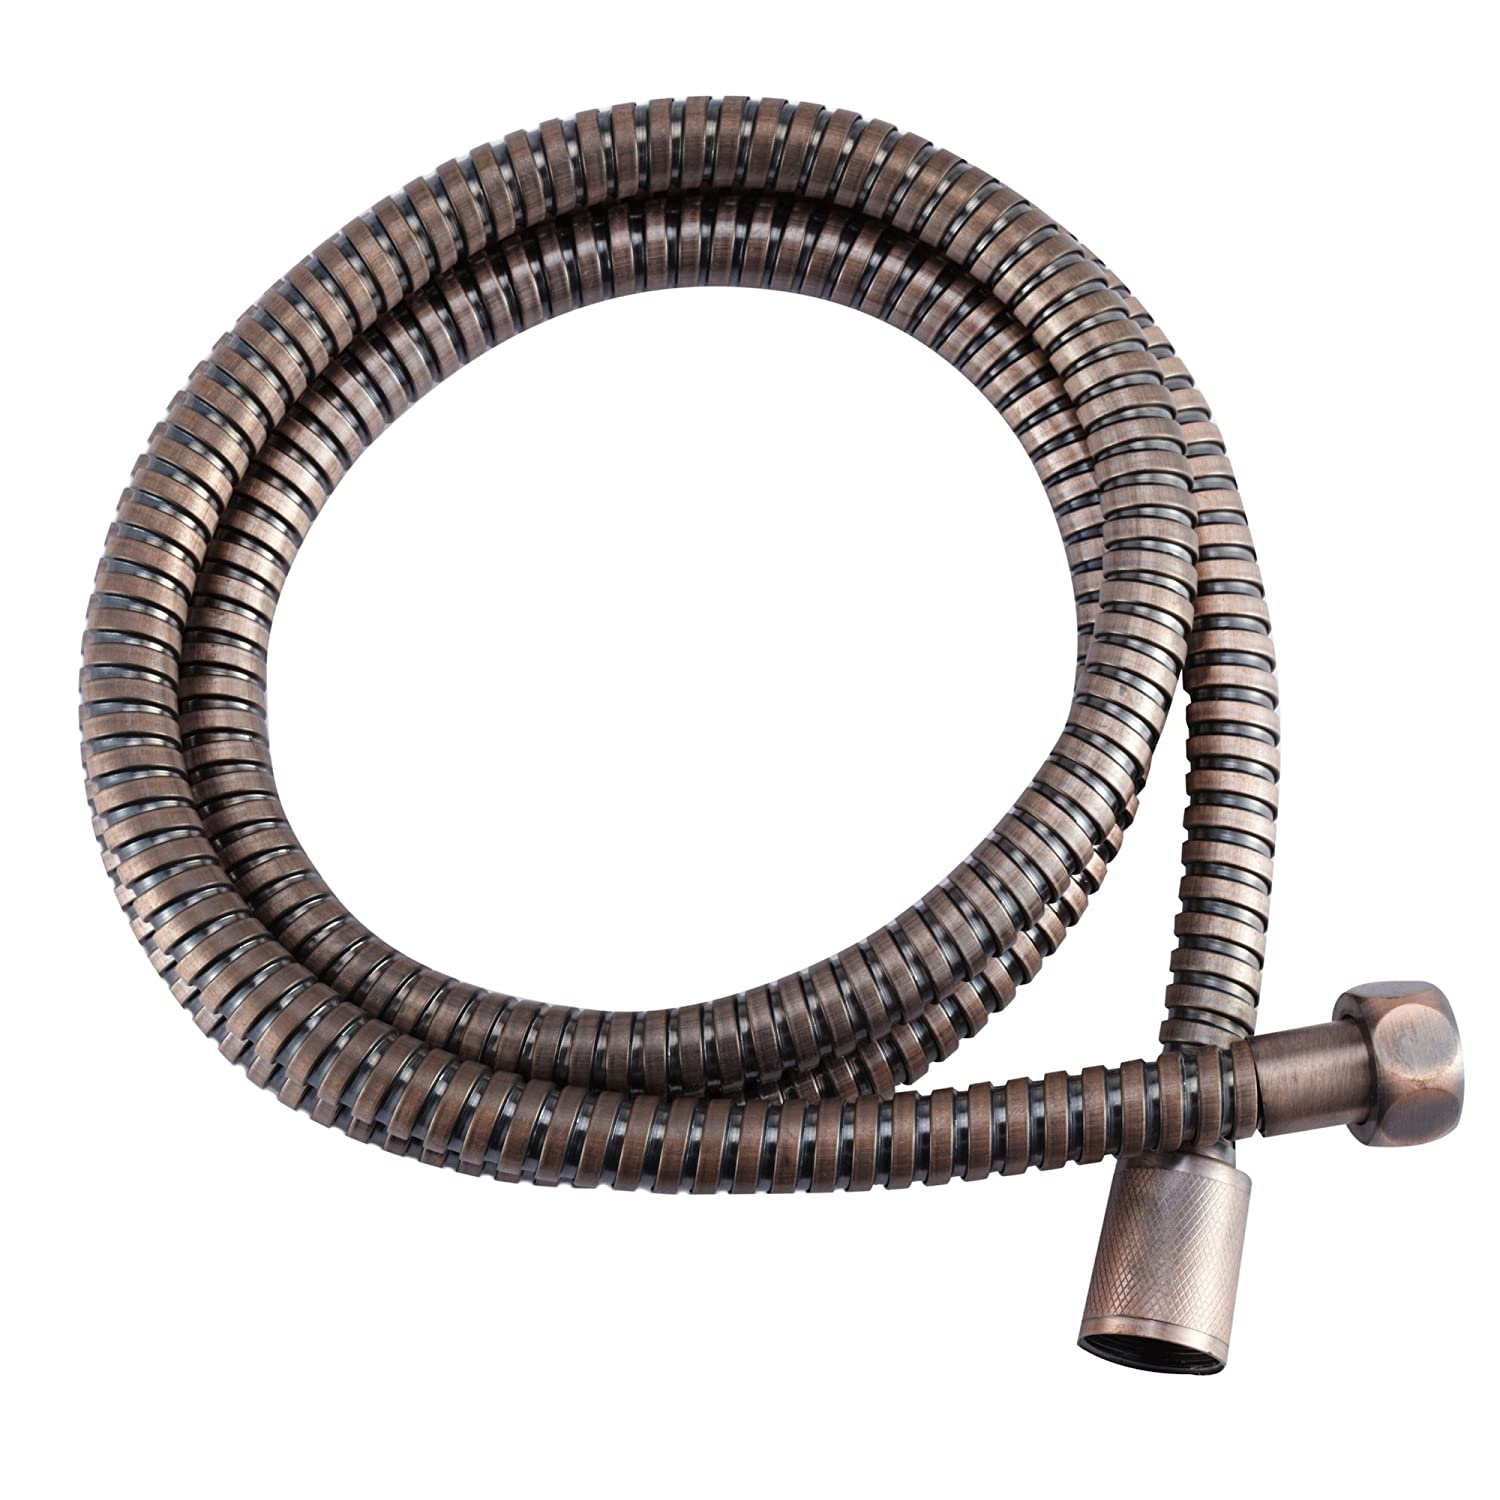 by Dura Faucet Stainless Steel Shower Hose Replacement 60 for Recreational Vehicles Bisque Parchment Travel Trailers and Campers Motorhomes